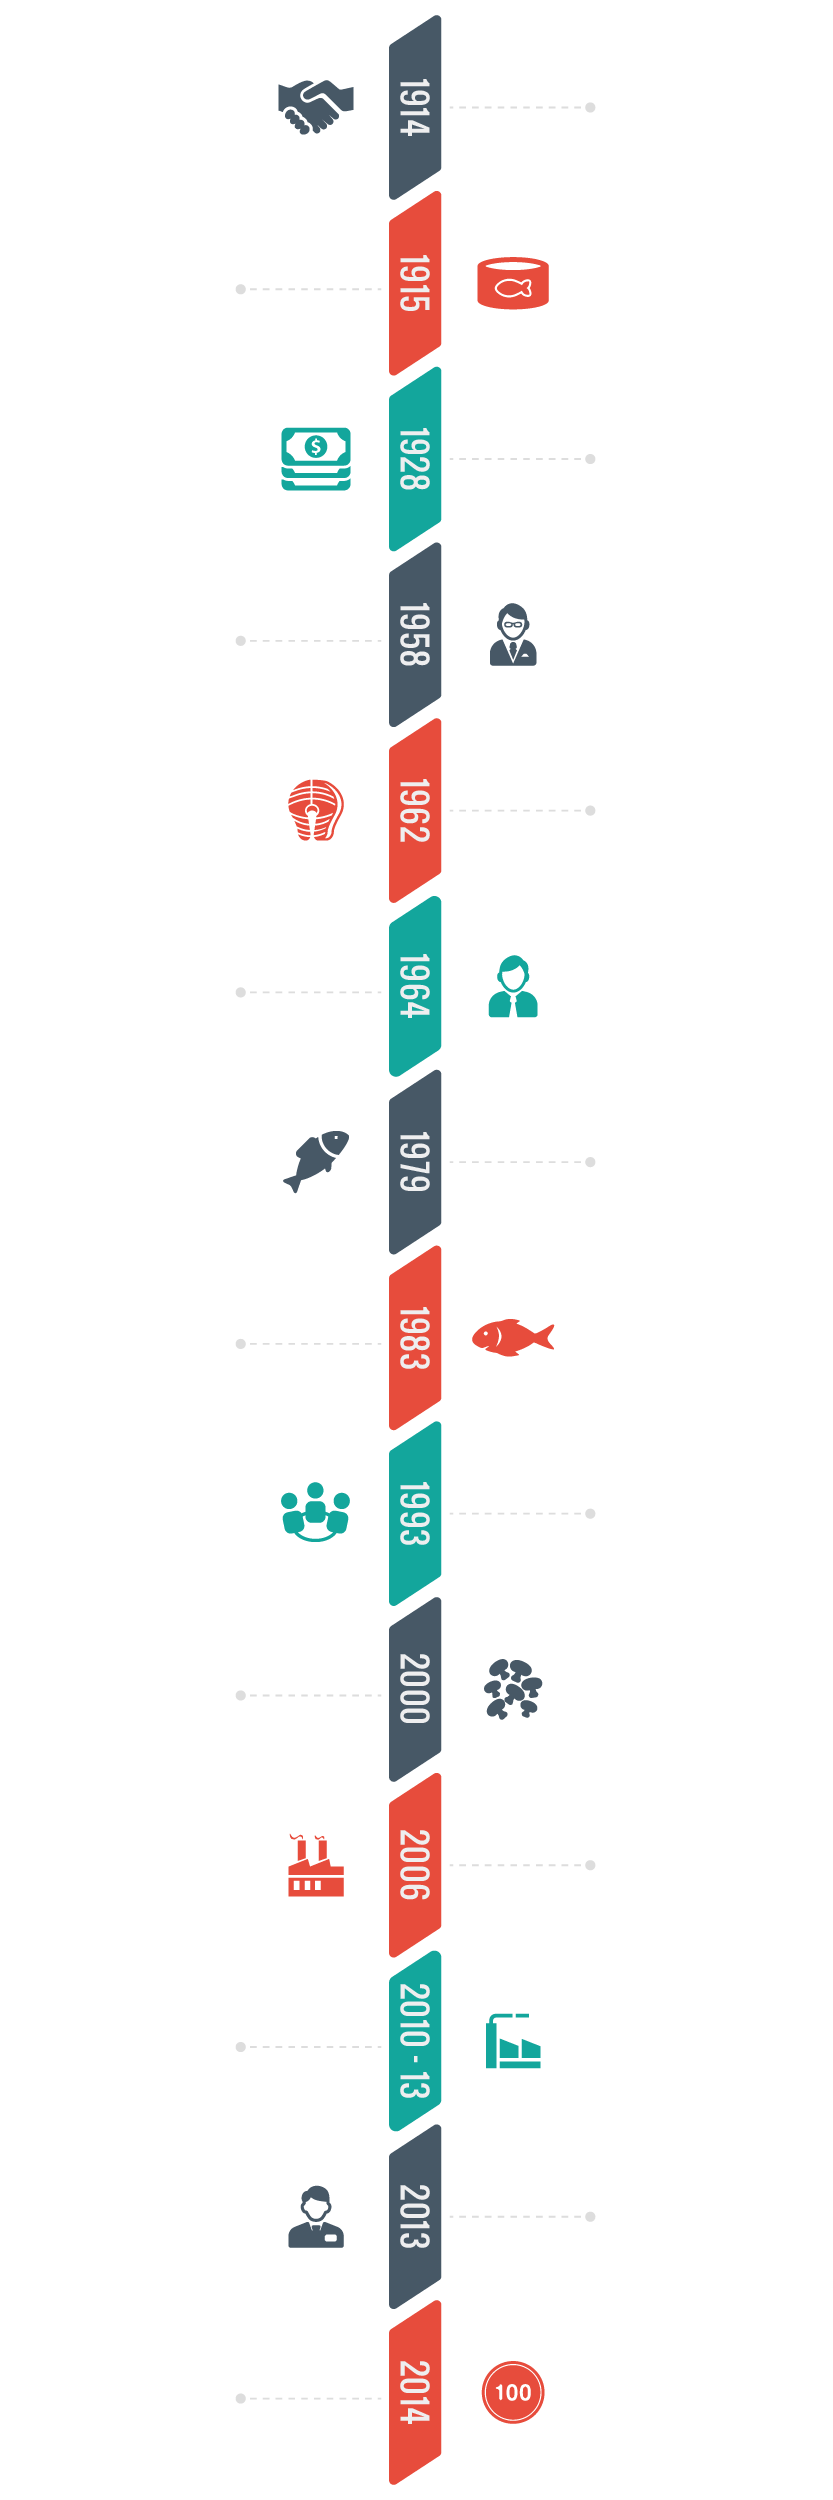 Image Calkins & Burke Timeline - Experienced in food sourcing, importing, exporting, logistics and quality assurance